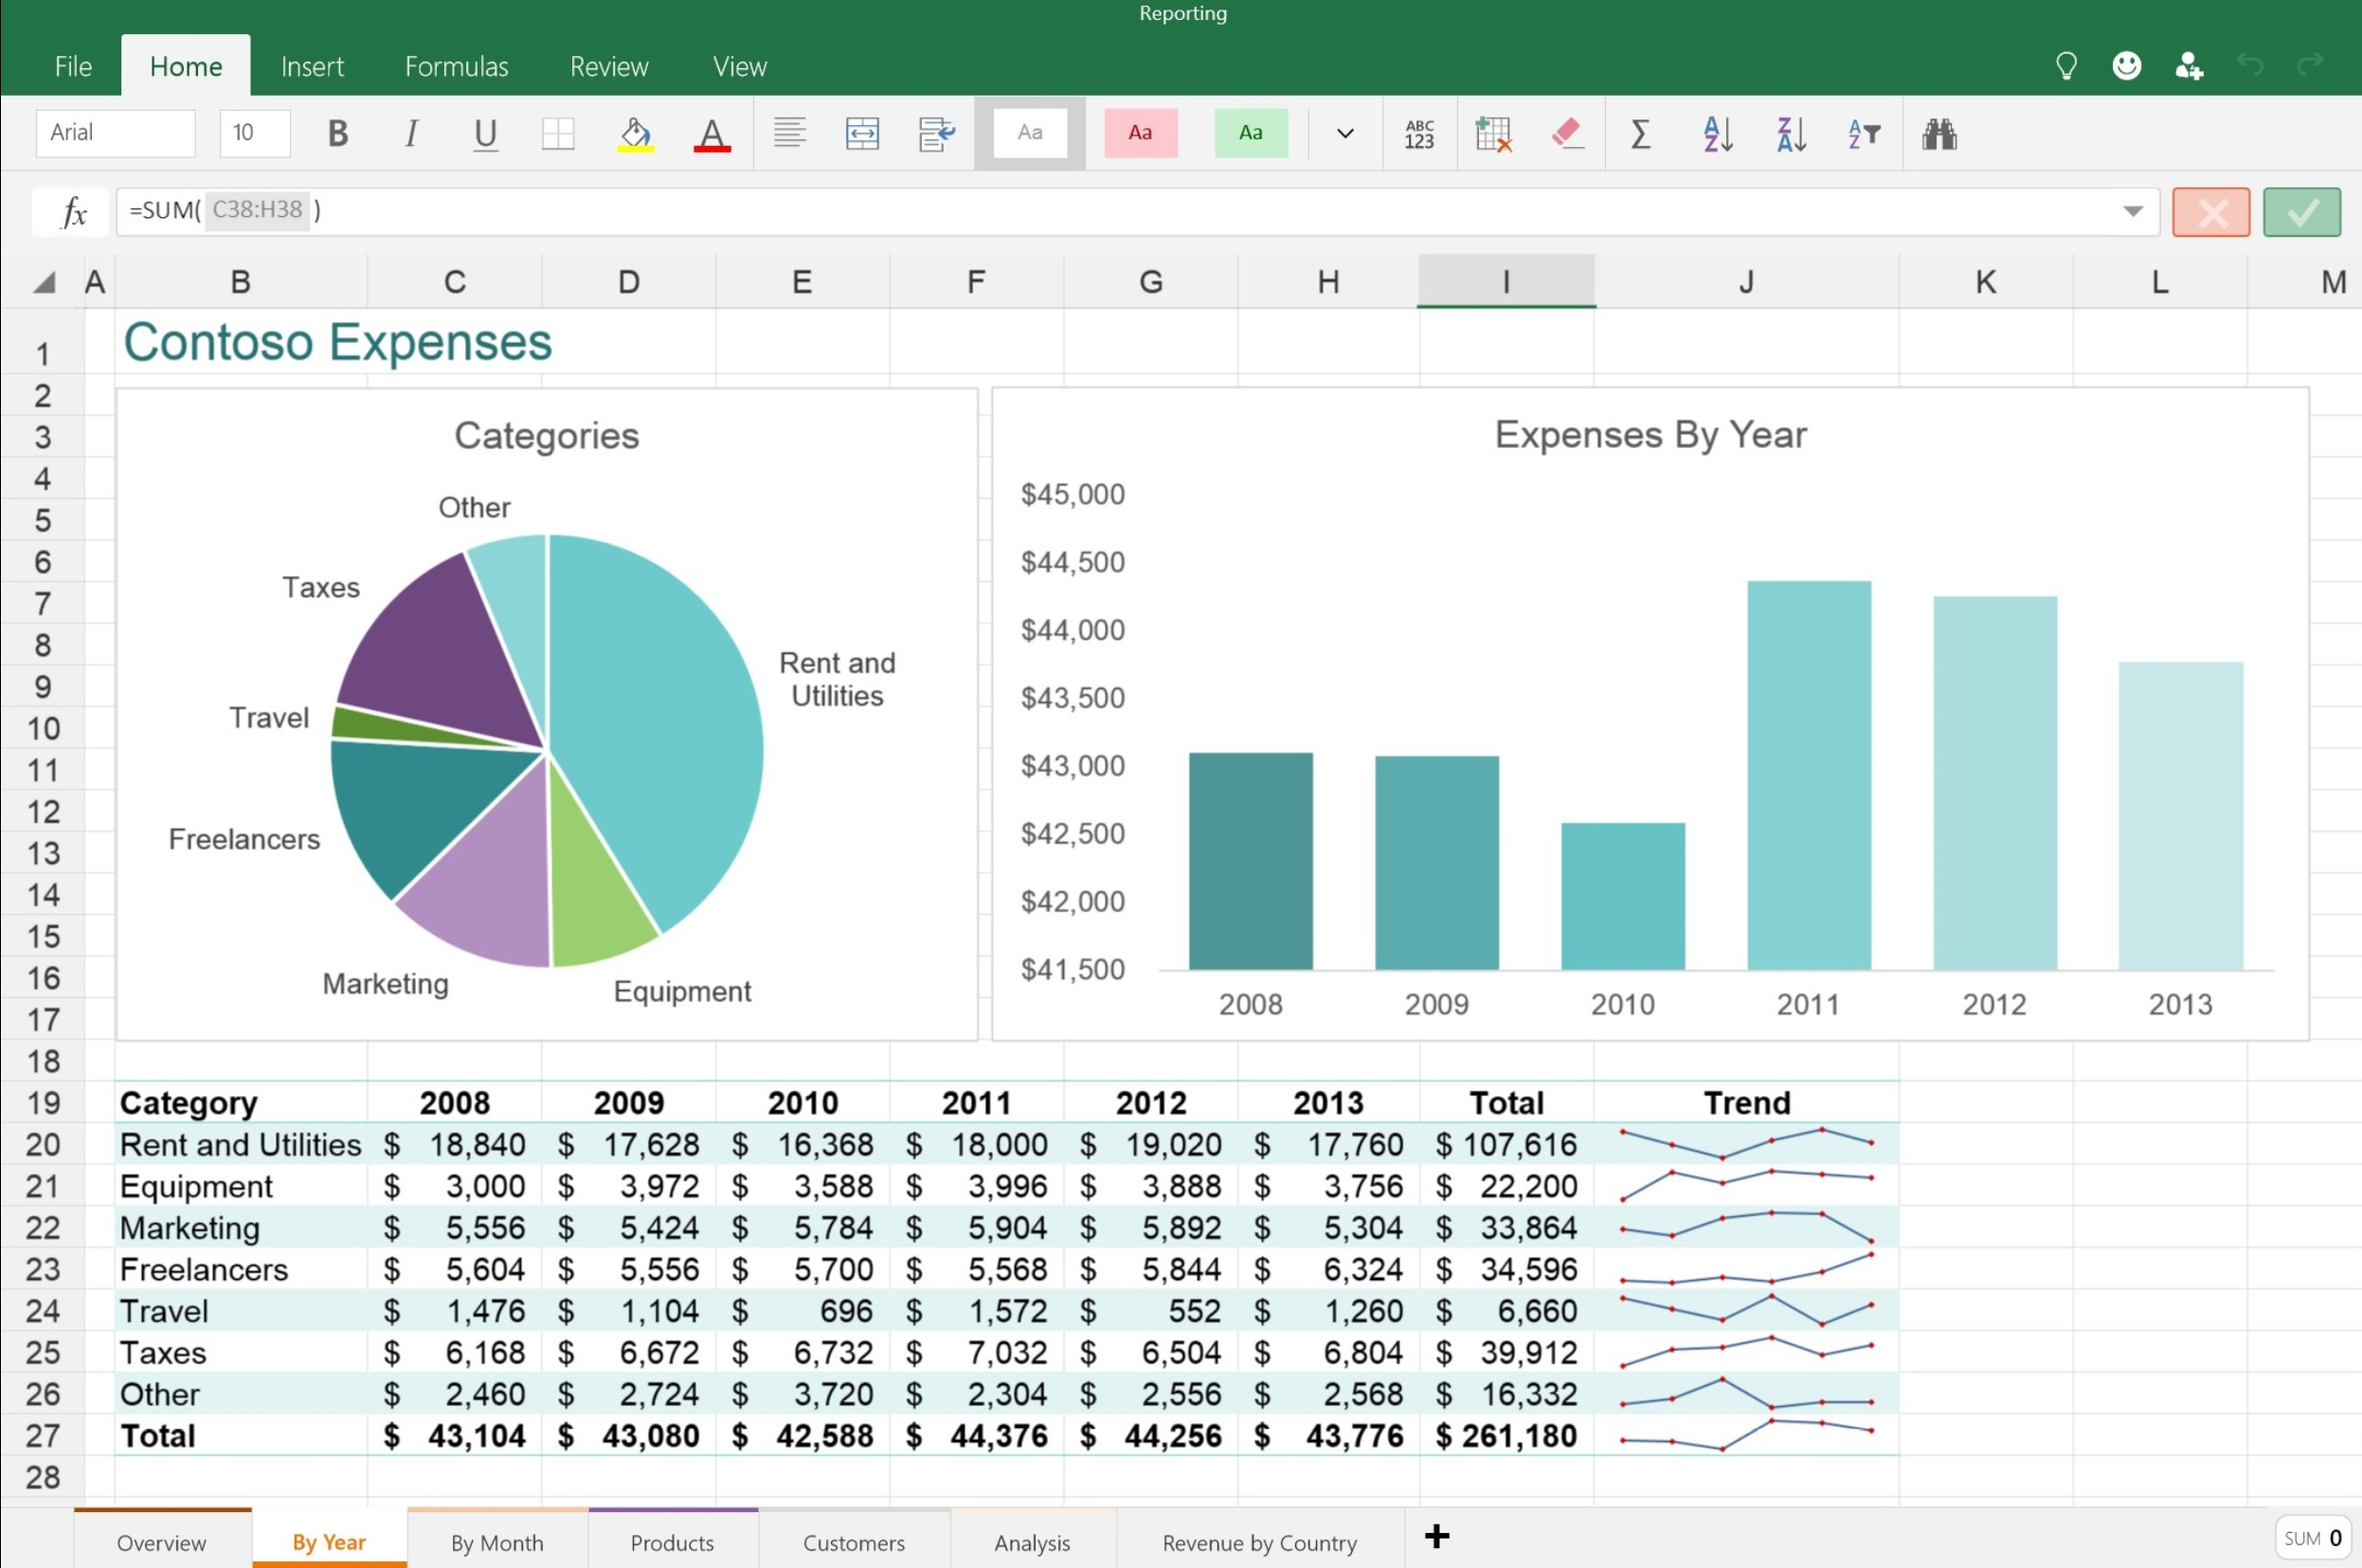 Ediblewildsus  Prepossessing Features Available In The New Word Excel And Powerpoint Apps For  With Heavenly Excel Touch App  With Cool Excel Size Limit Also How To Create Pie Chart In Excel  In Addition Add Button In Excel And Use Countif In Excel As Well As Excel Calculate Time Between Dates Additionally How To Make A Simple Bar Graph In Excel From Mspowerusercom With Ediblewildsus  Heavenly Features Available In The New Word Excel And Powerpoint Apps For  With Cool Excel Touch App  And Prepossessing Excel Size Limit Also How To Create Pie Chart In Excel  In Addition Add Button In Excel From Mspowerusercom